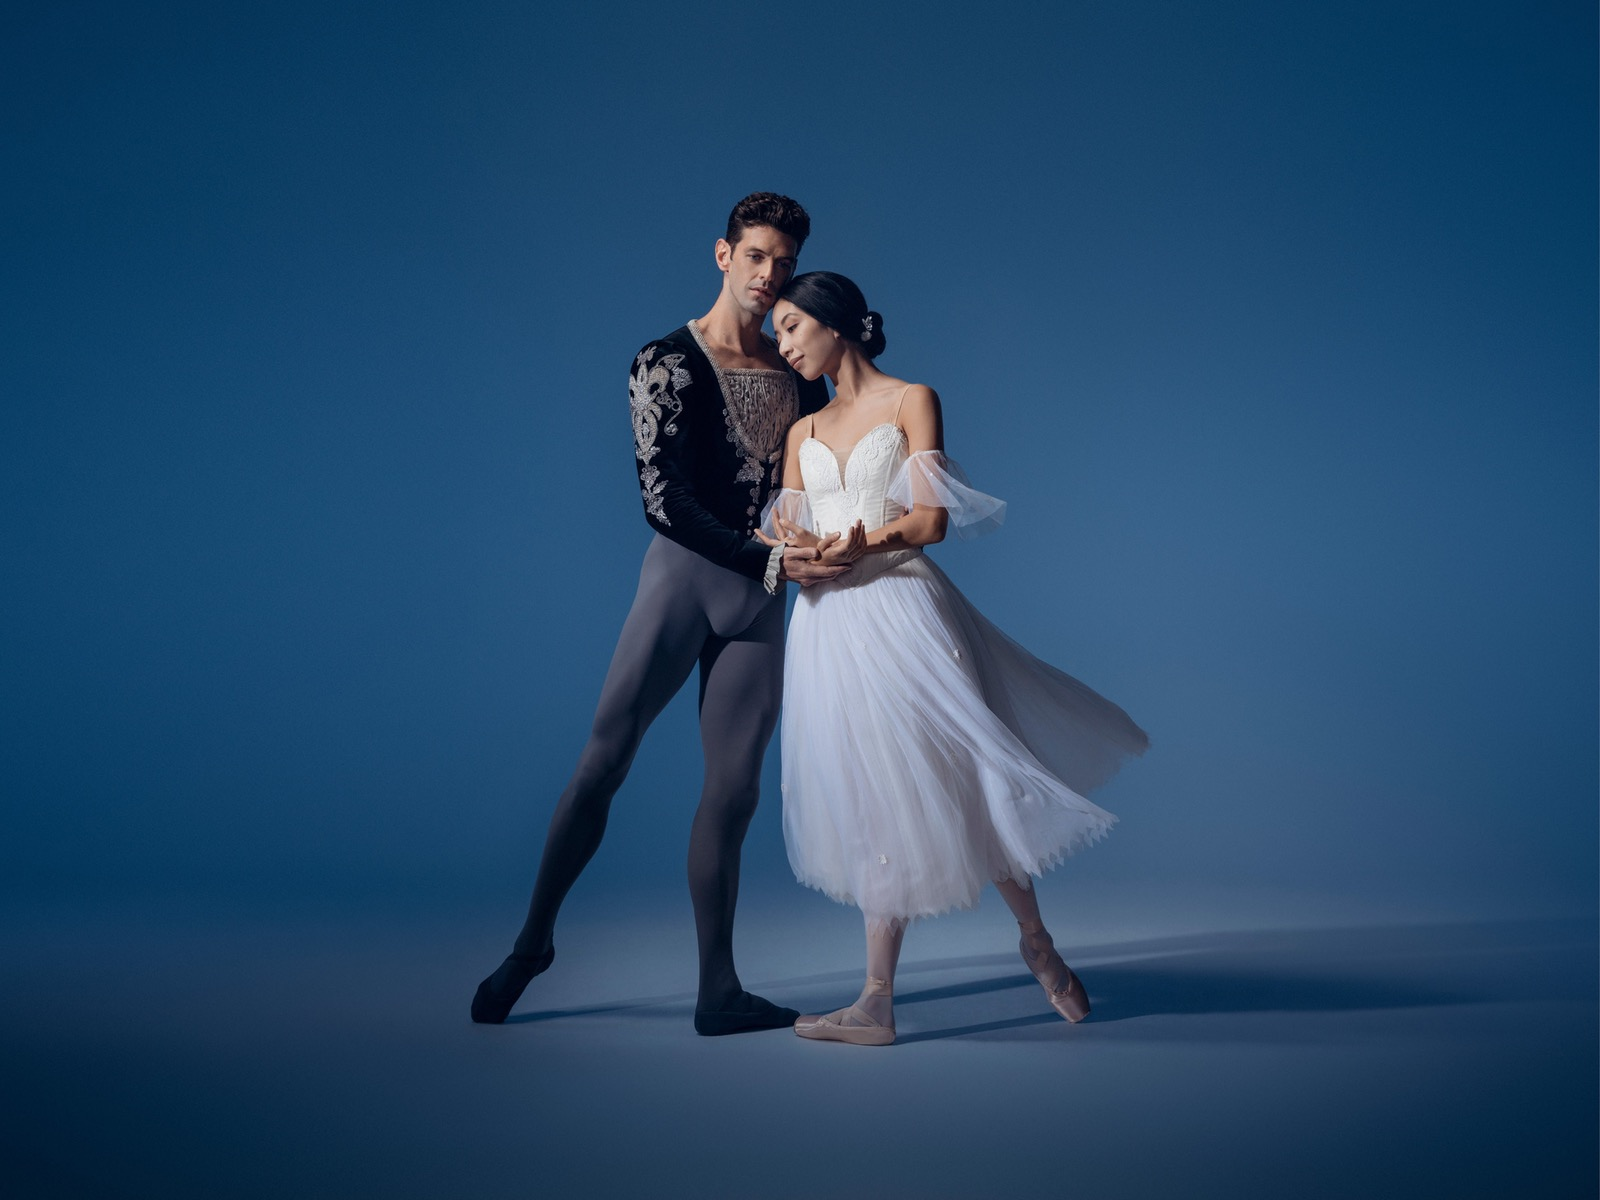 Andrew Killian and Karen Nanasca from The Australian Ballet